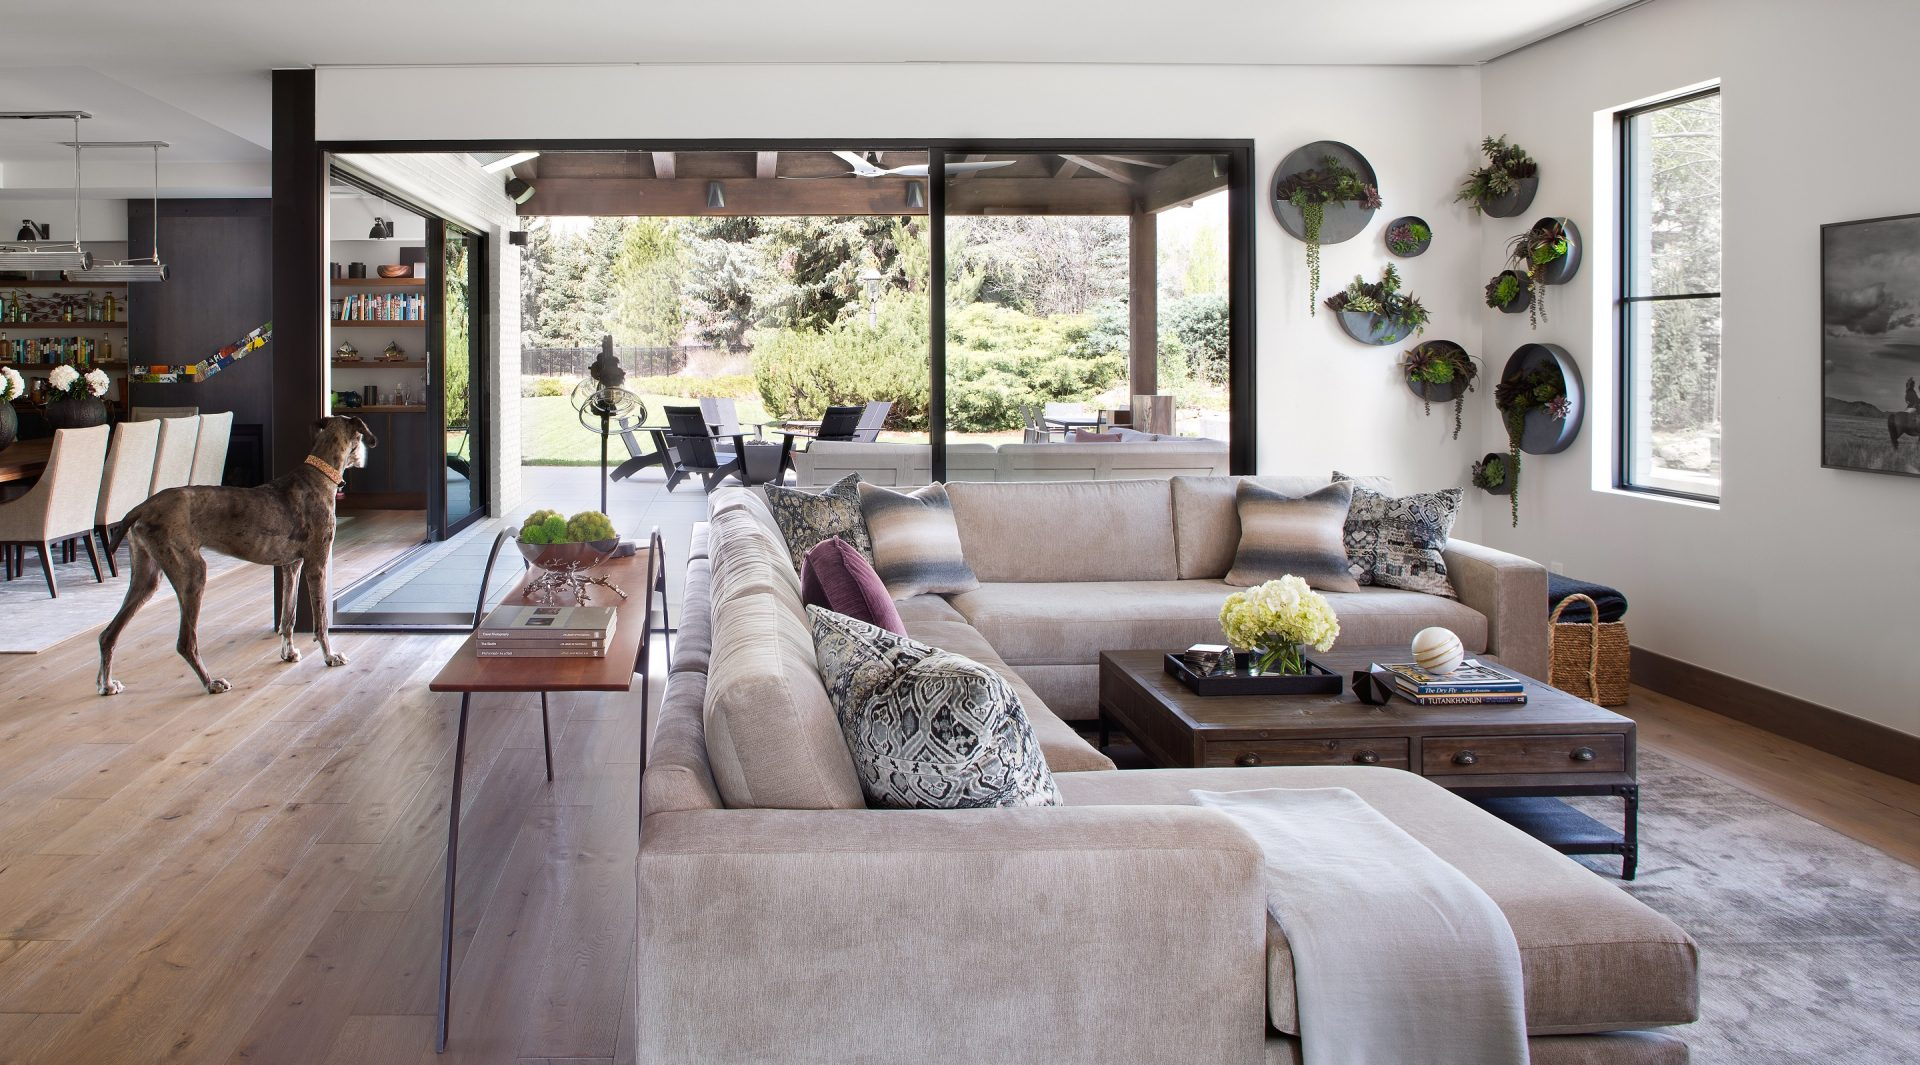 20 Top Interior Designers From Denver - Design Hubs Of The World (9)